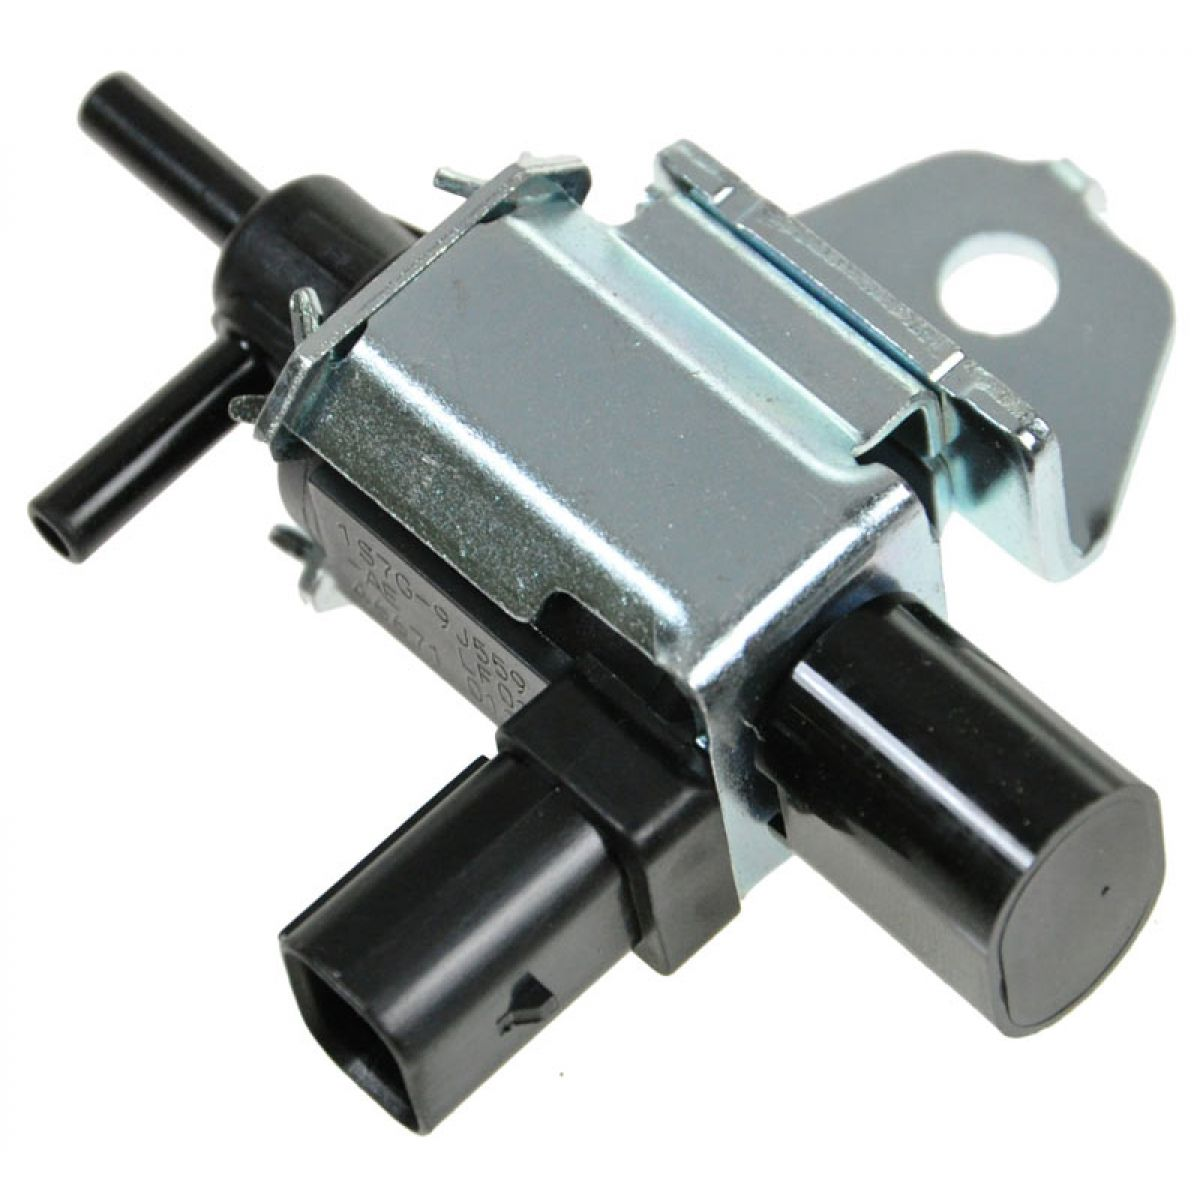 Details about Intake Manifold Runner Control IMRC Solenoid for 02-04 ...